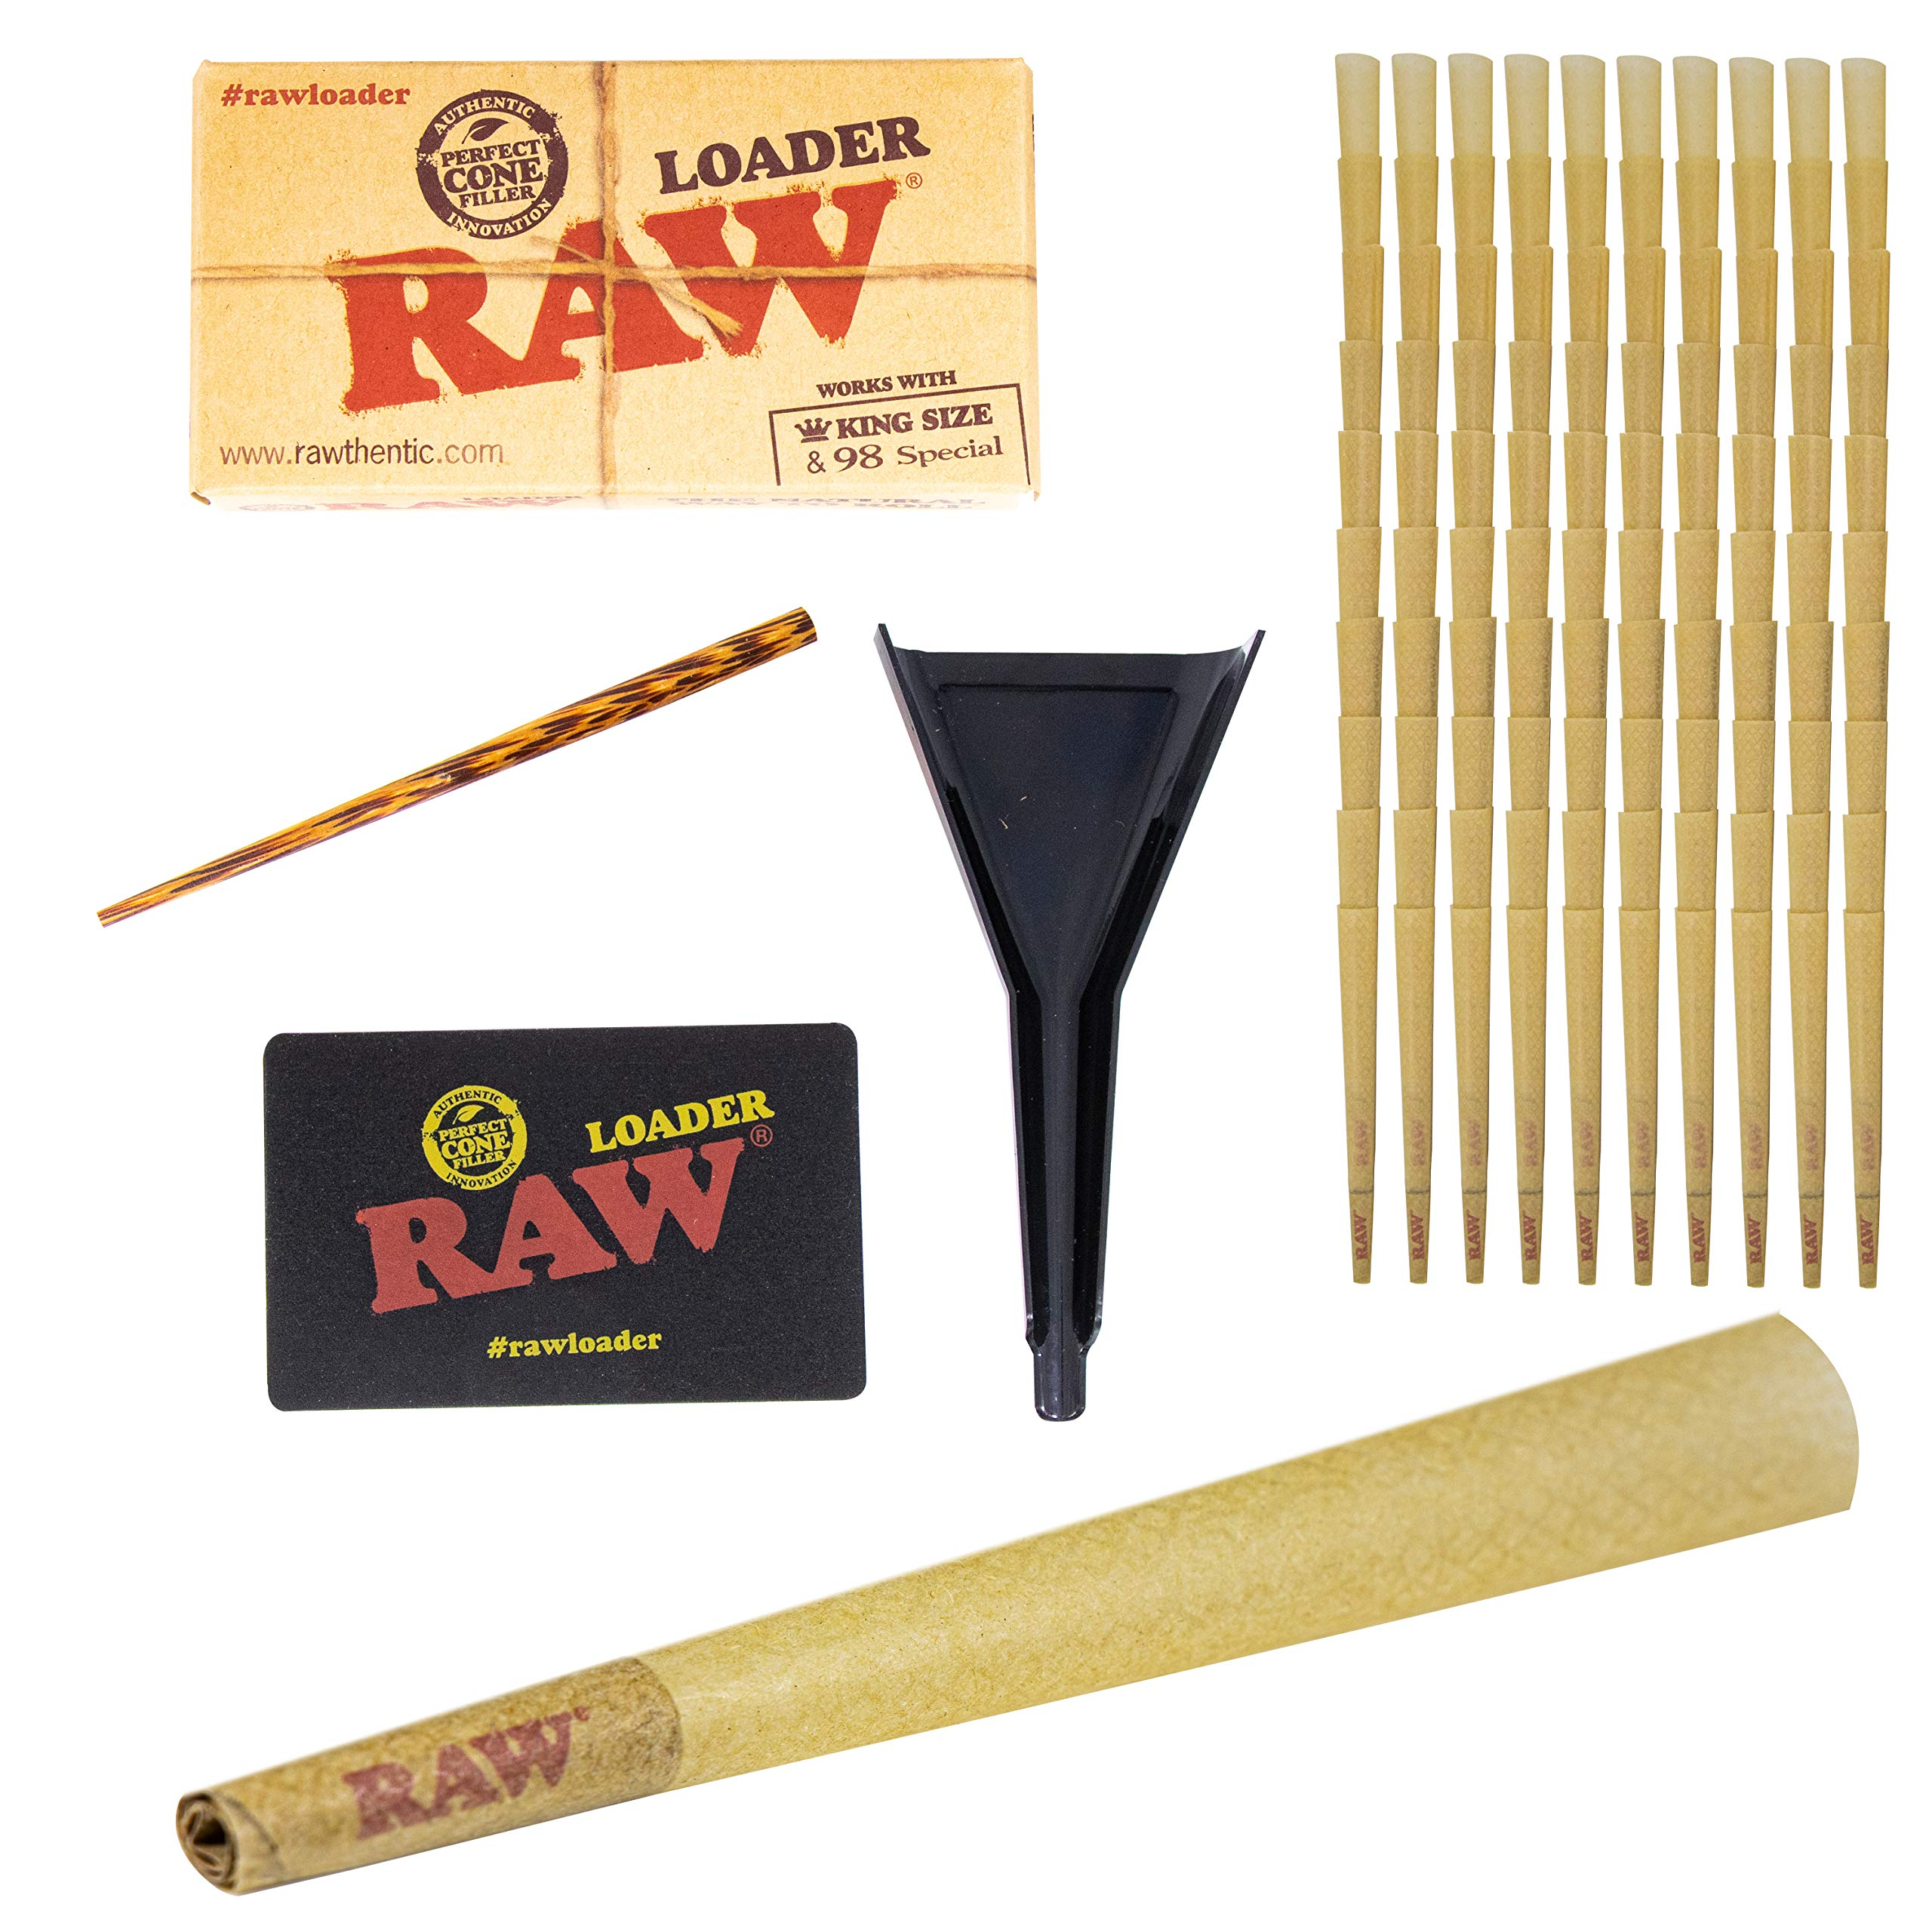 100 RAW Cones Classic King Size, with RAW Cone Loader, Pre-Rolled RAW Rolling Papers with Tips by Upper Midland Products